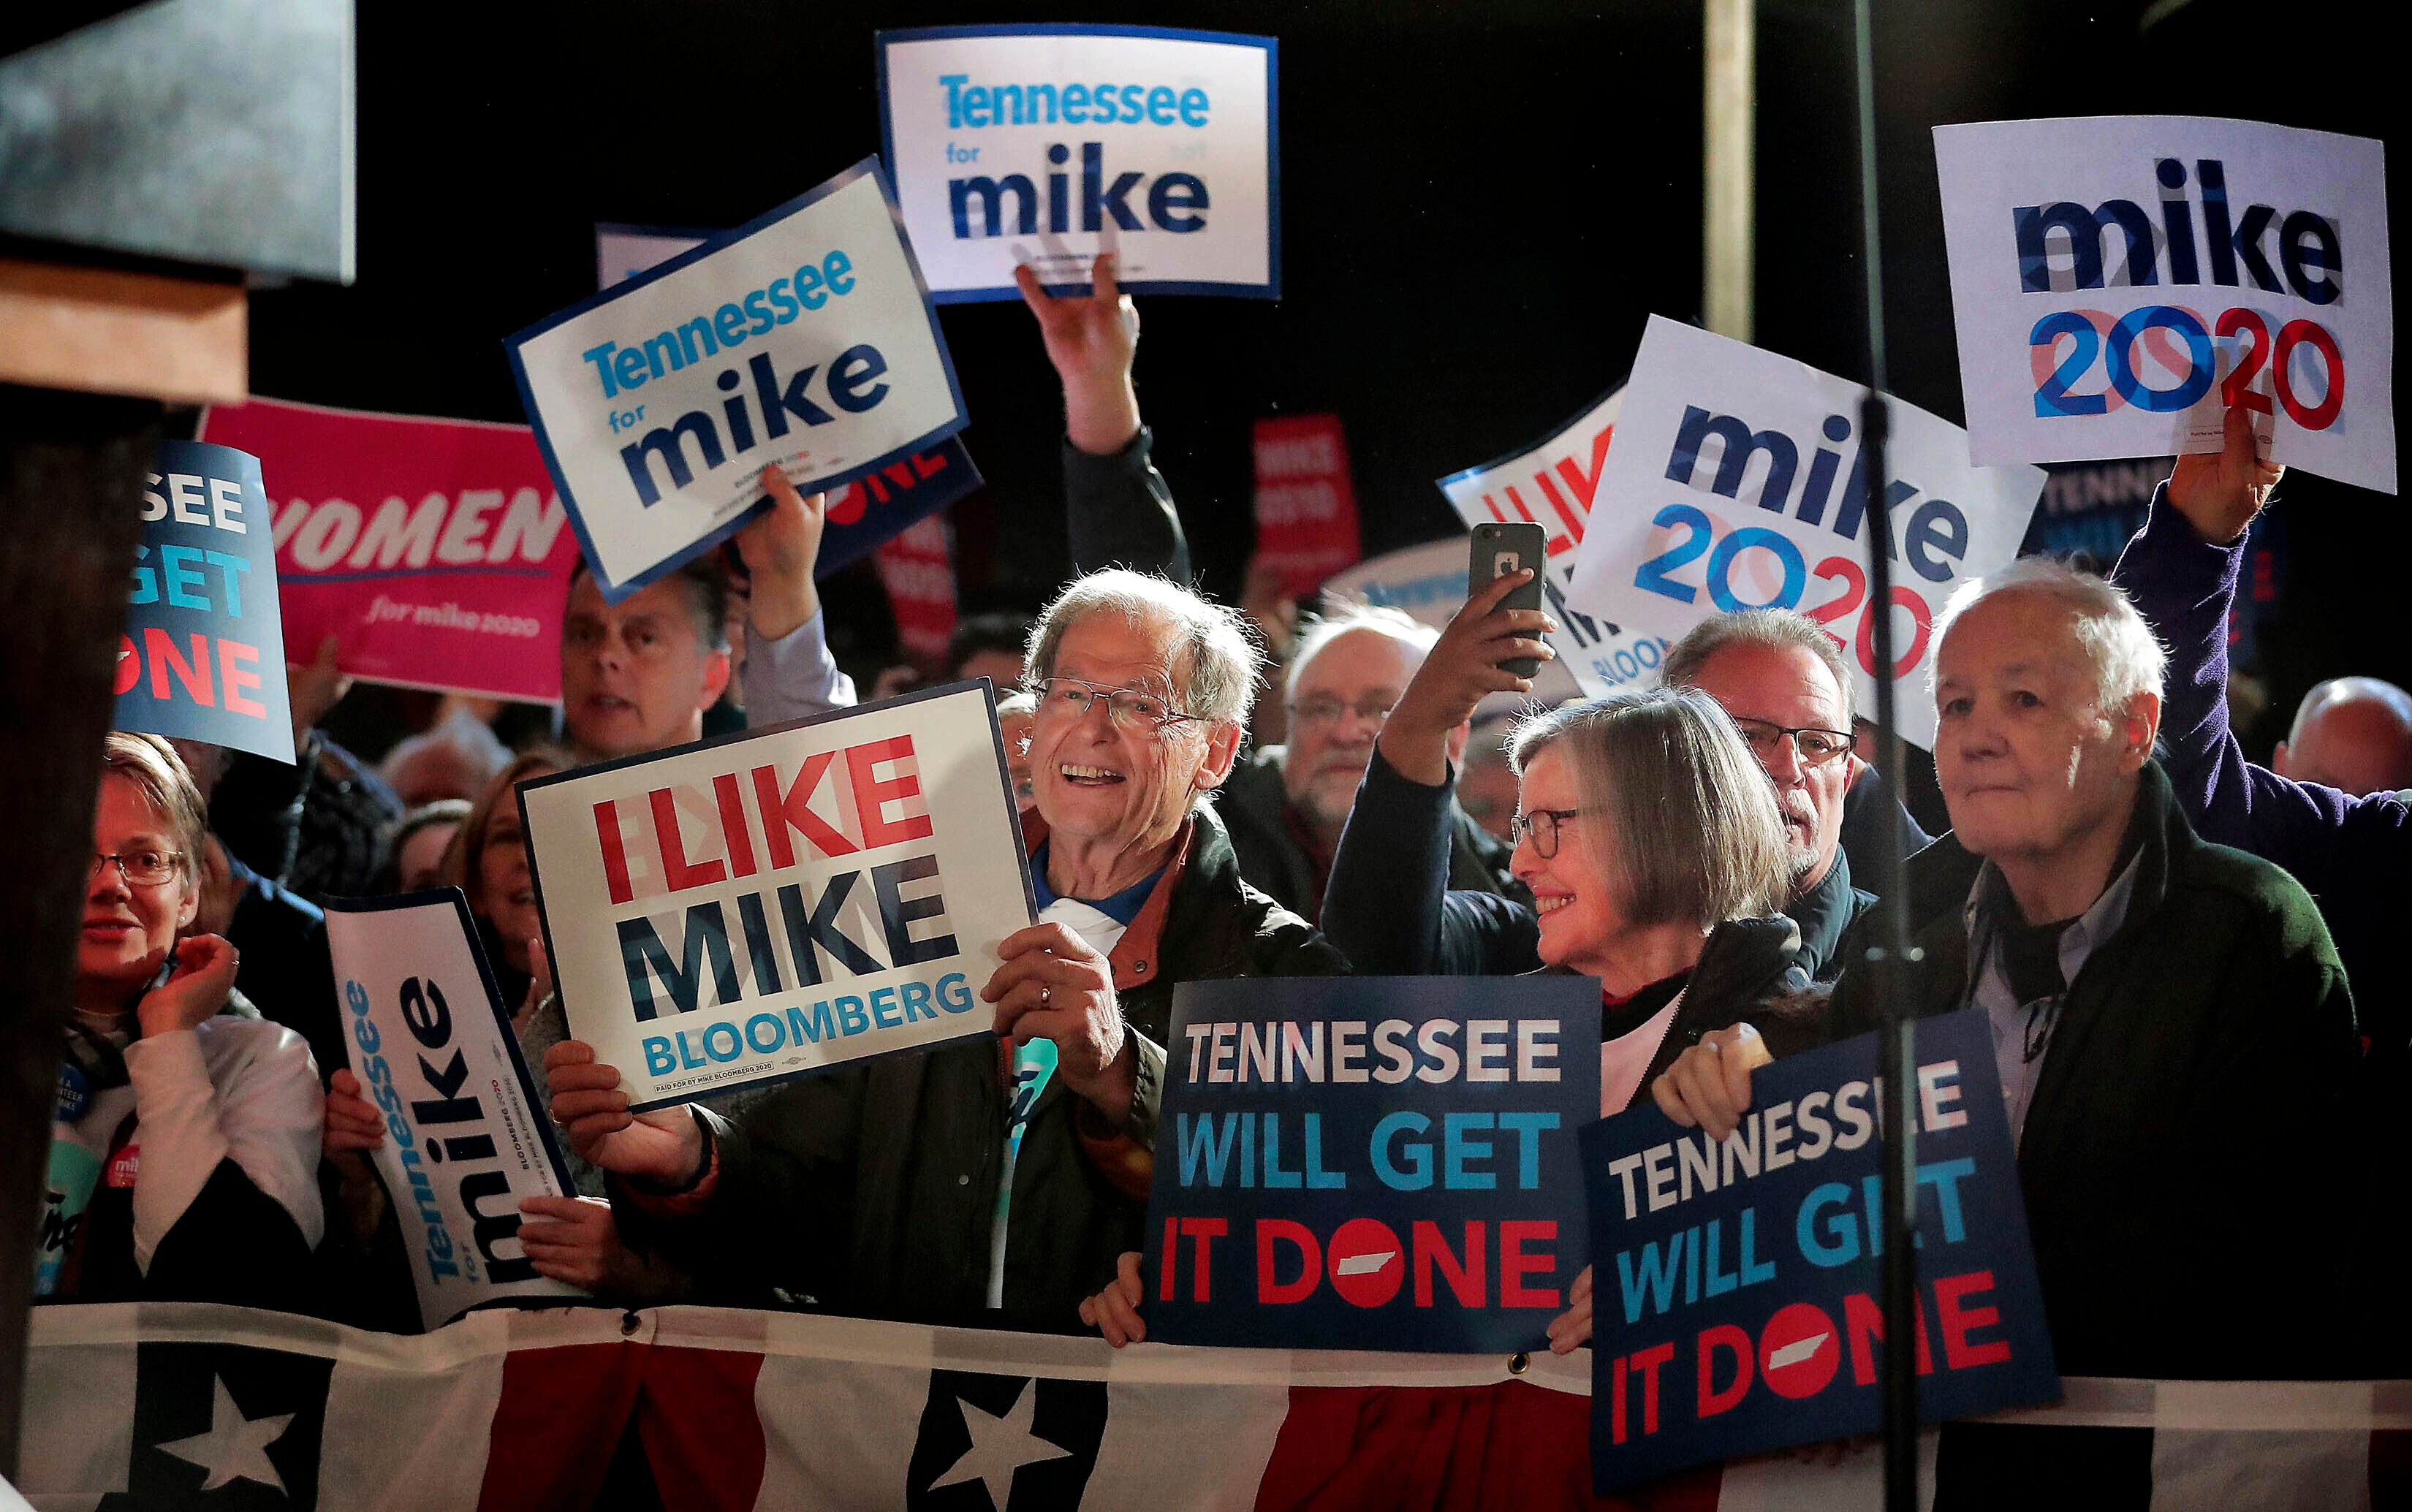 Bloomberg fans gather as Democratic presidential contender Mike Bloomberg delivers his stump speech during a campaign stop in Memphis, Tennessee, on Feb. 28, 2020.